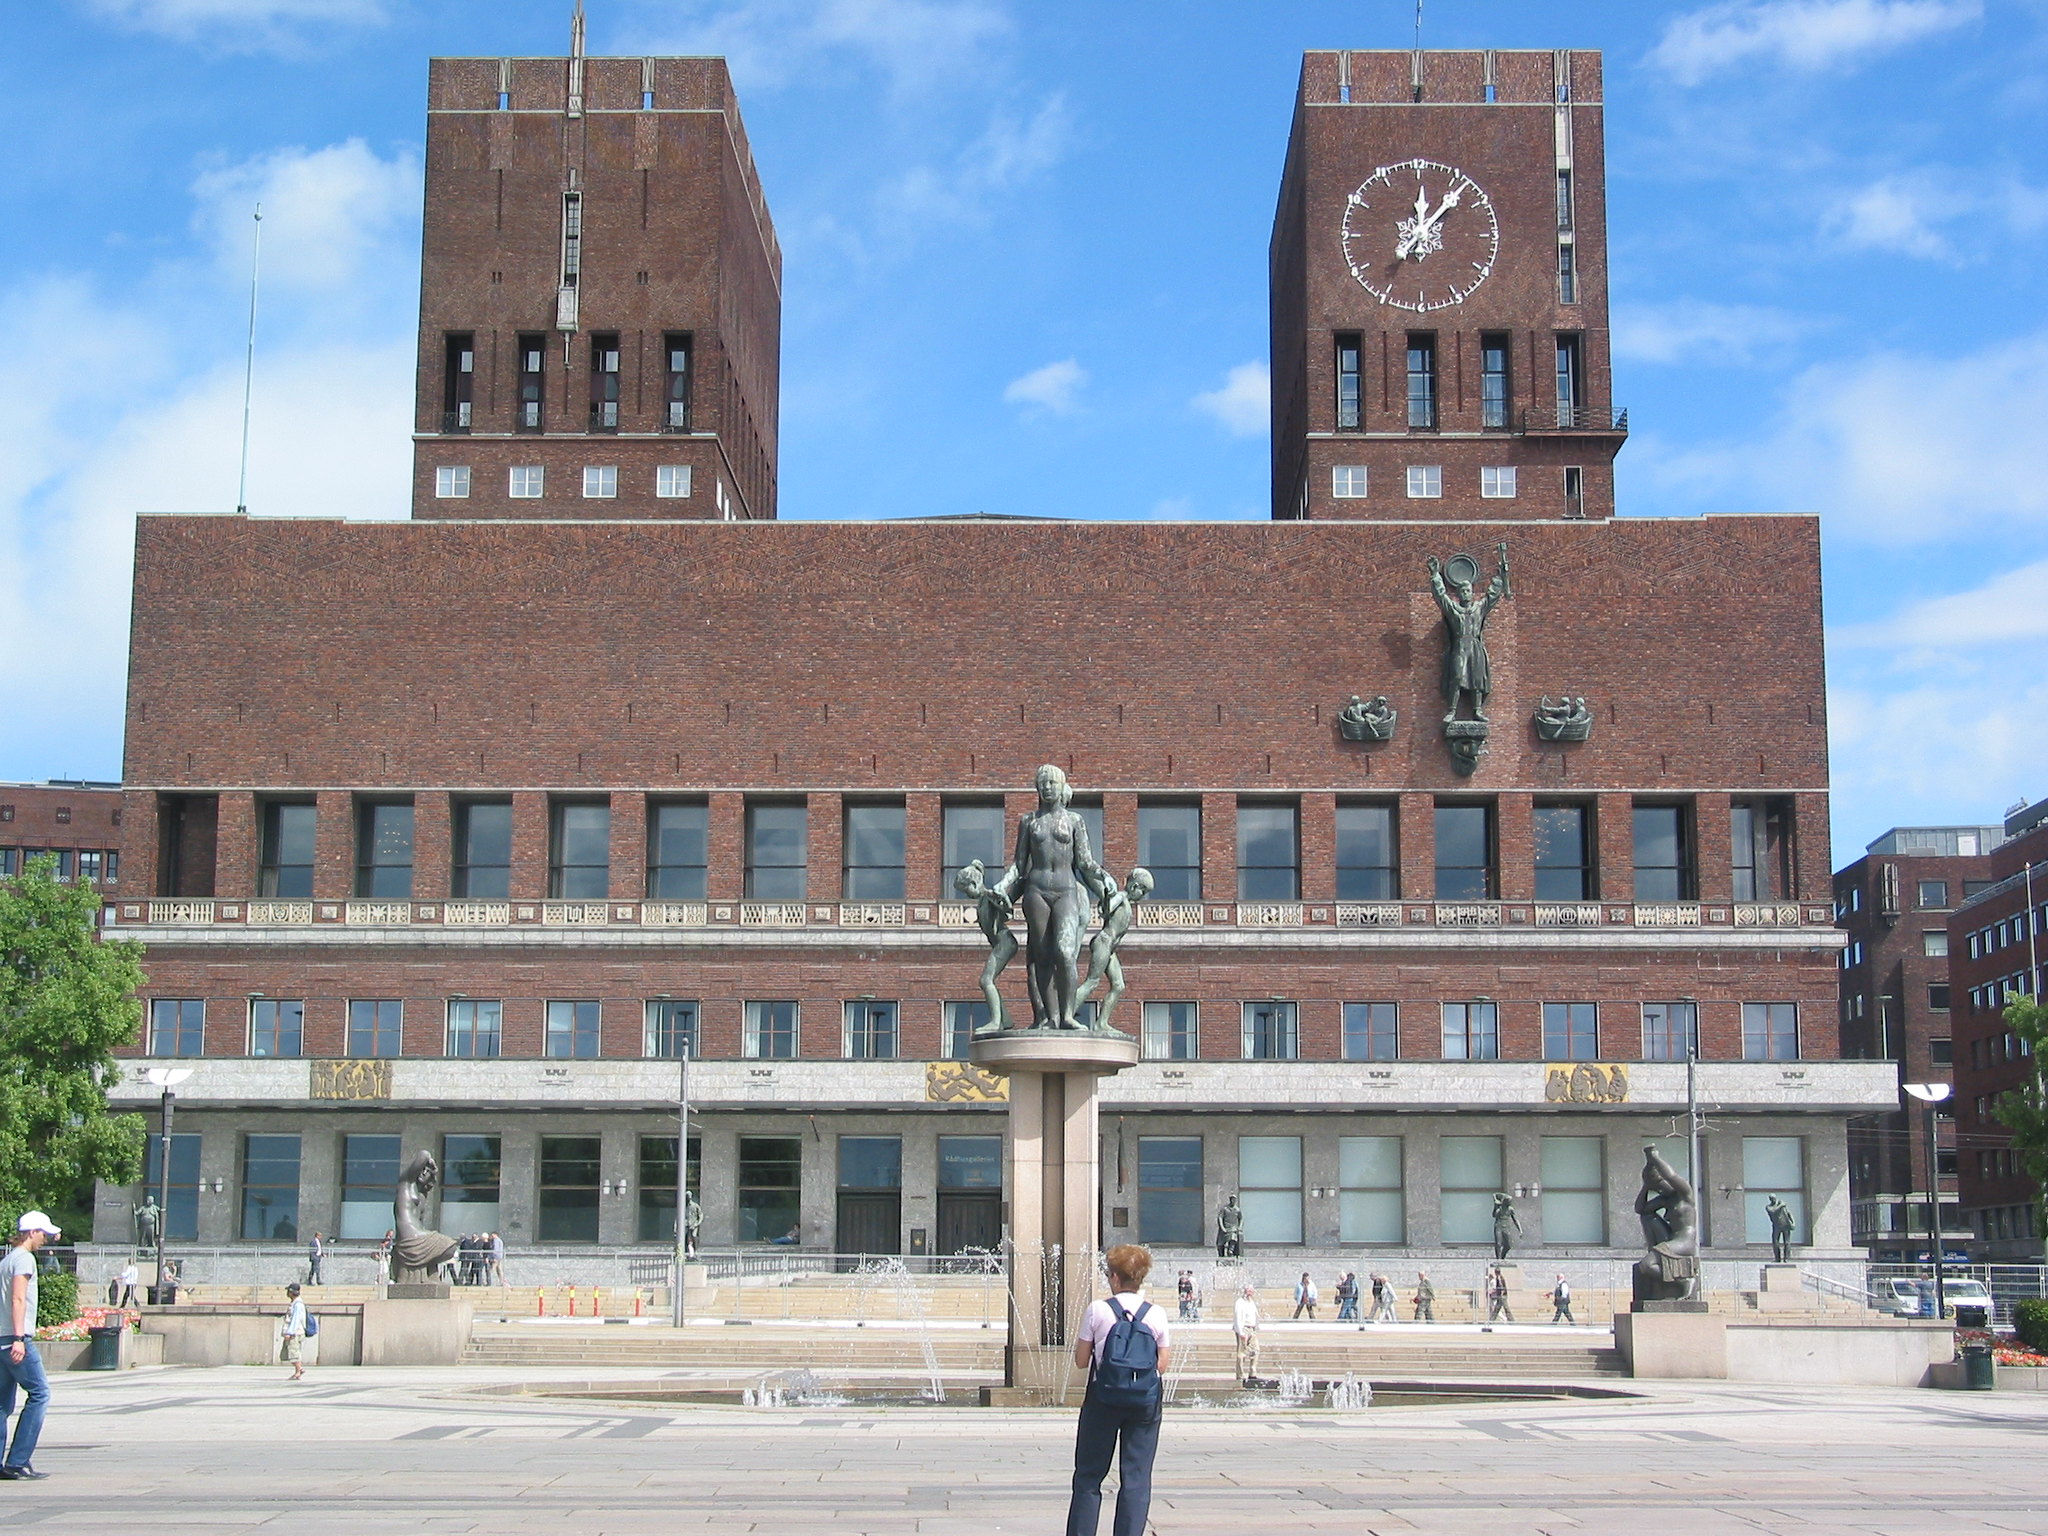 City Hall (Rådhuset): Municipal Building Of The City Of Oslo